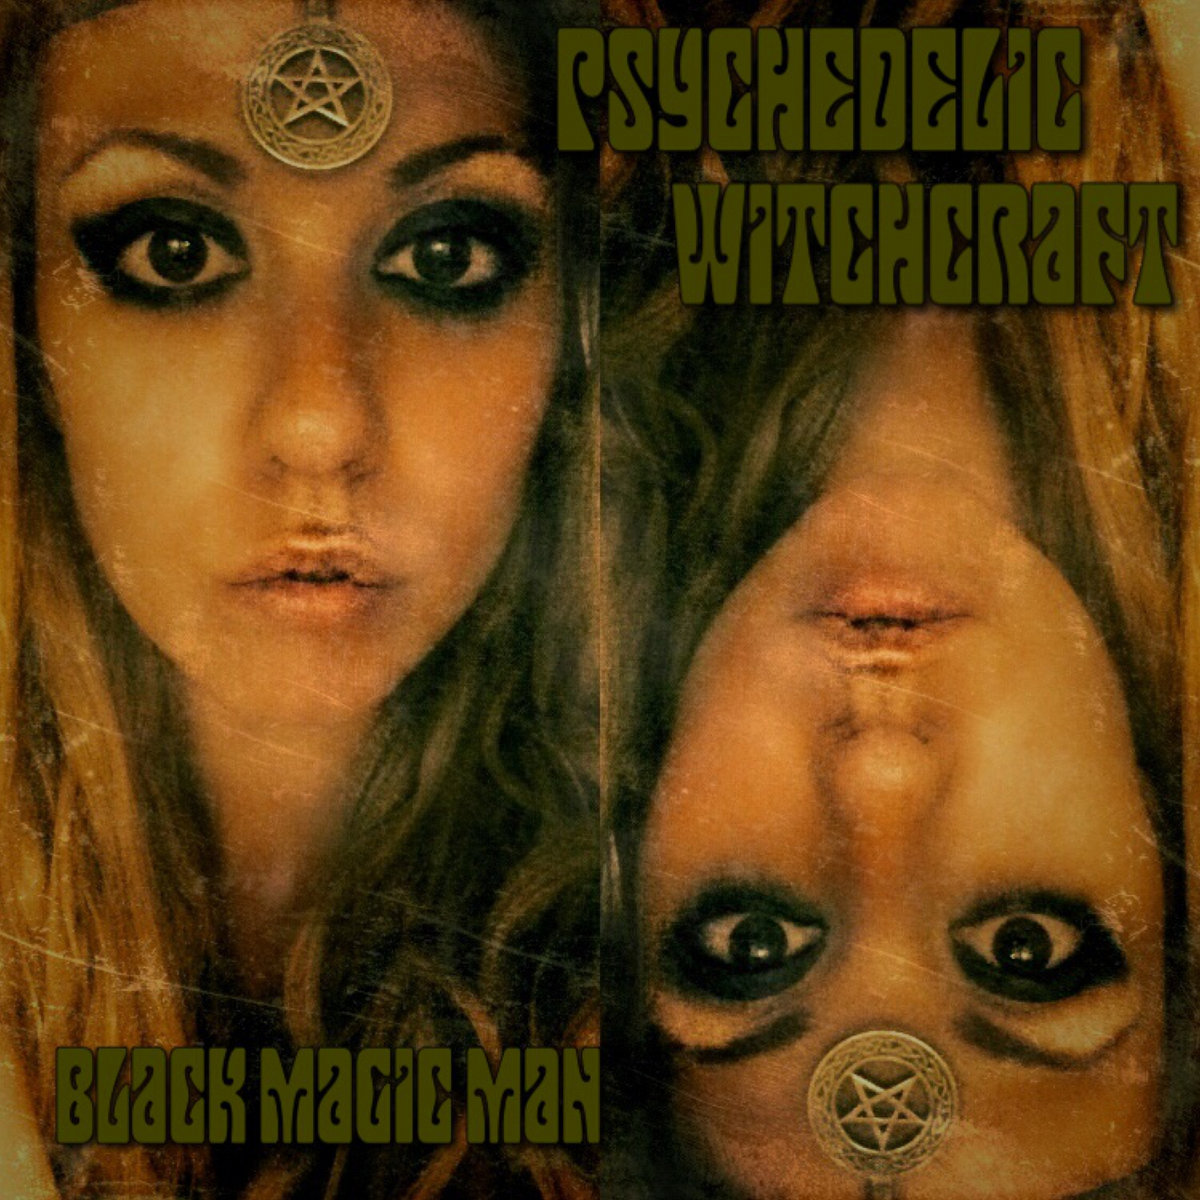 Black Magic Man | Psychedelic Witchcraft